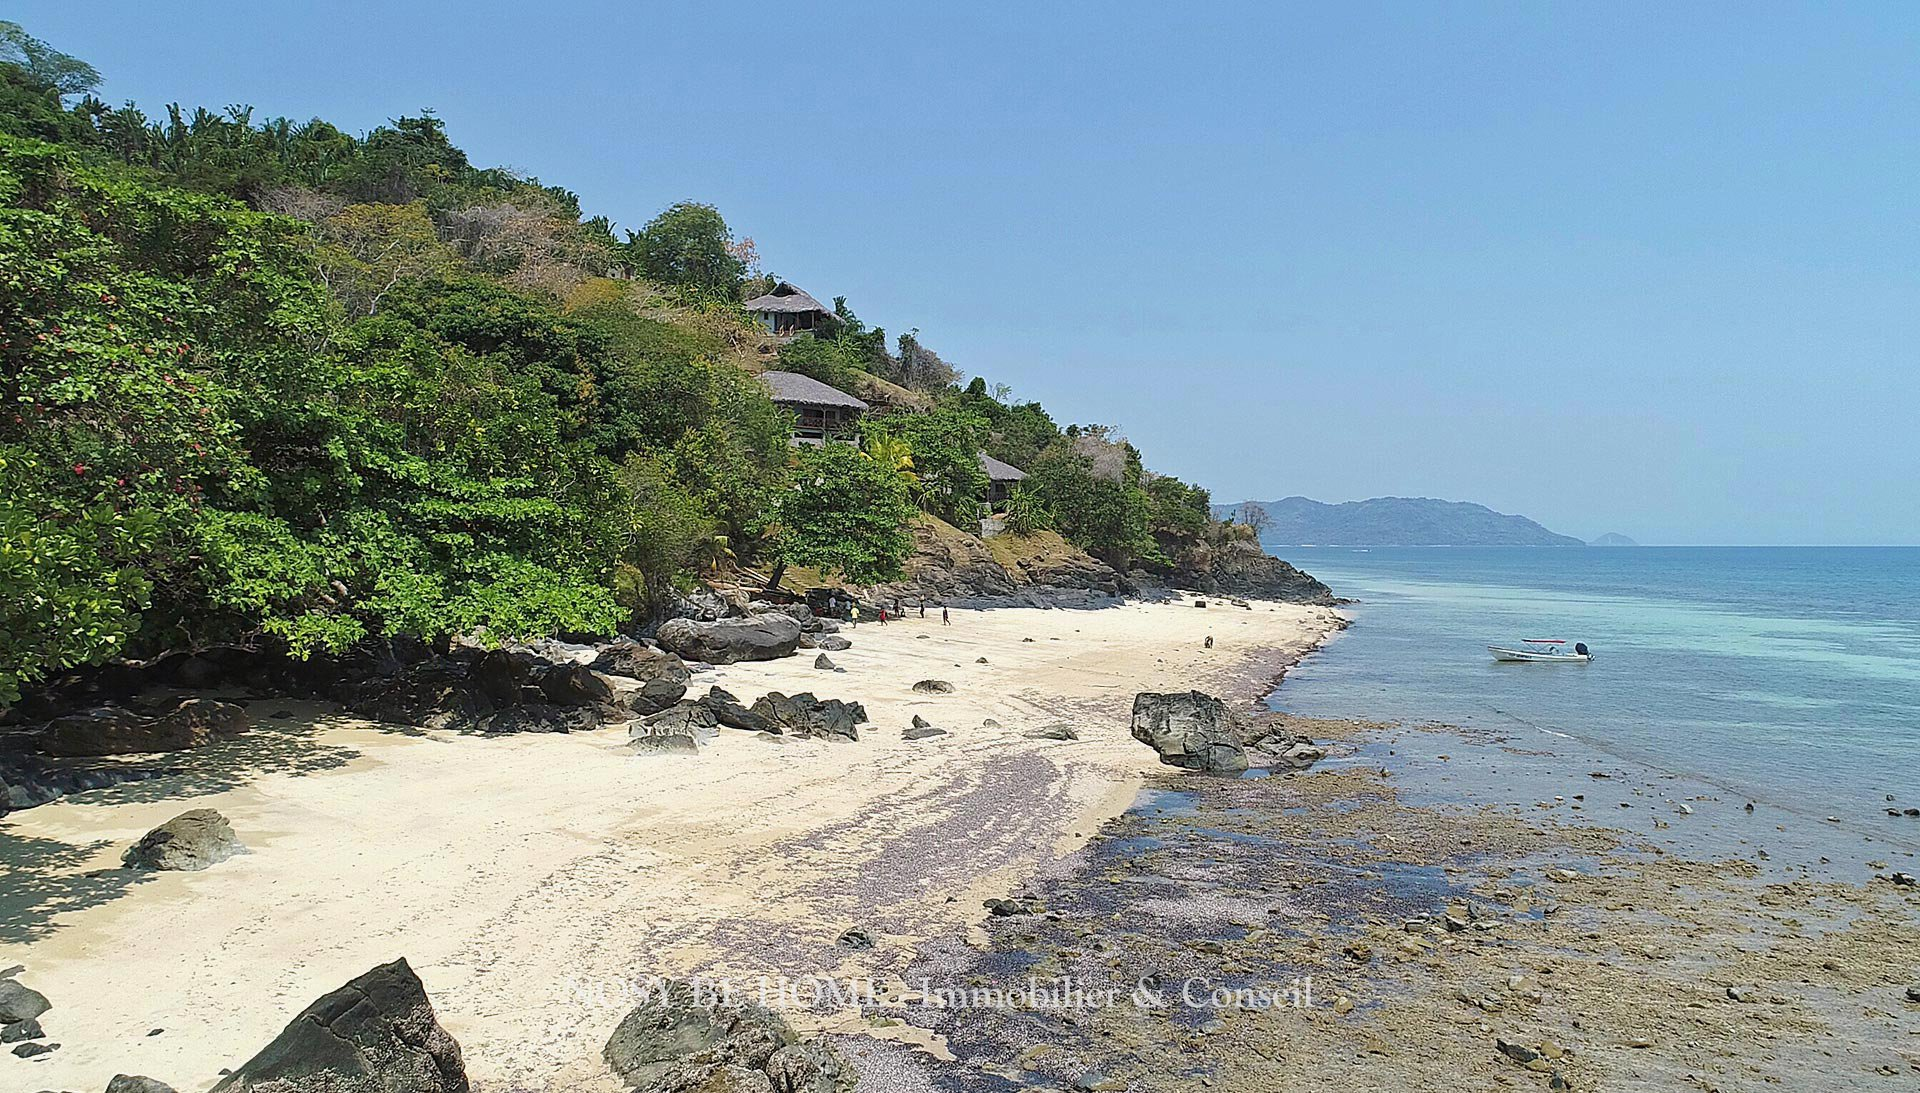 Sale Bed and breakfast - Nosy Komba - Madagascar